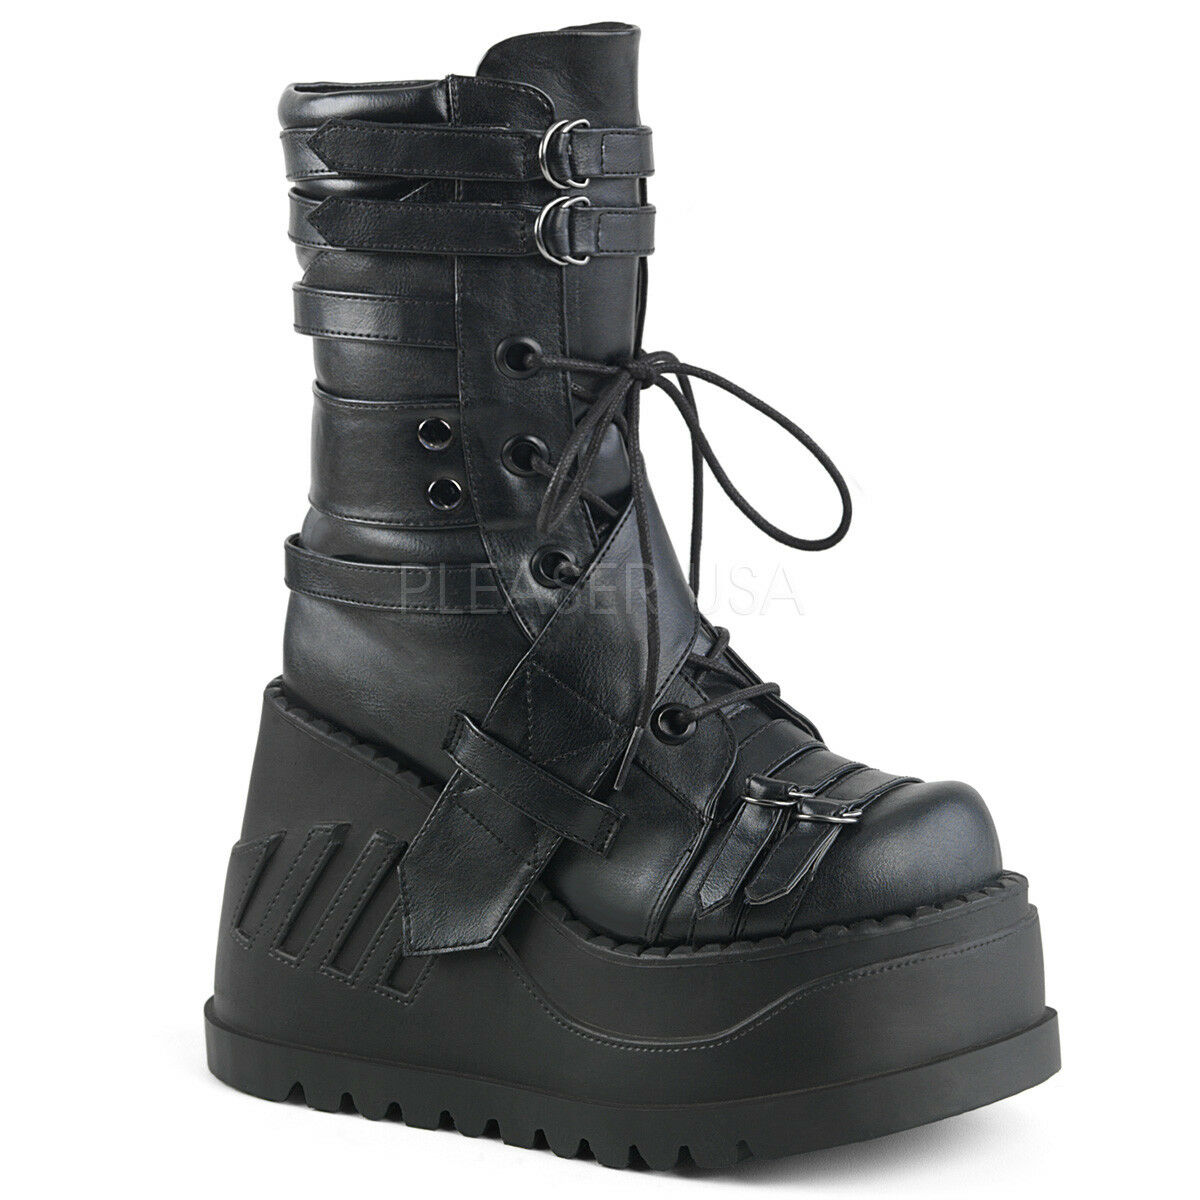 Demonia STOMP-26 Womens Black Vegan Leather Platform Wedge Lace-Up Mid-Calf Boot